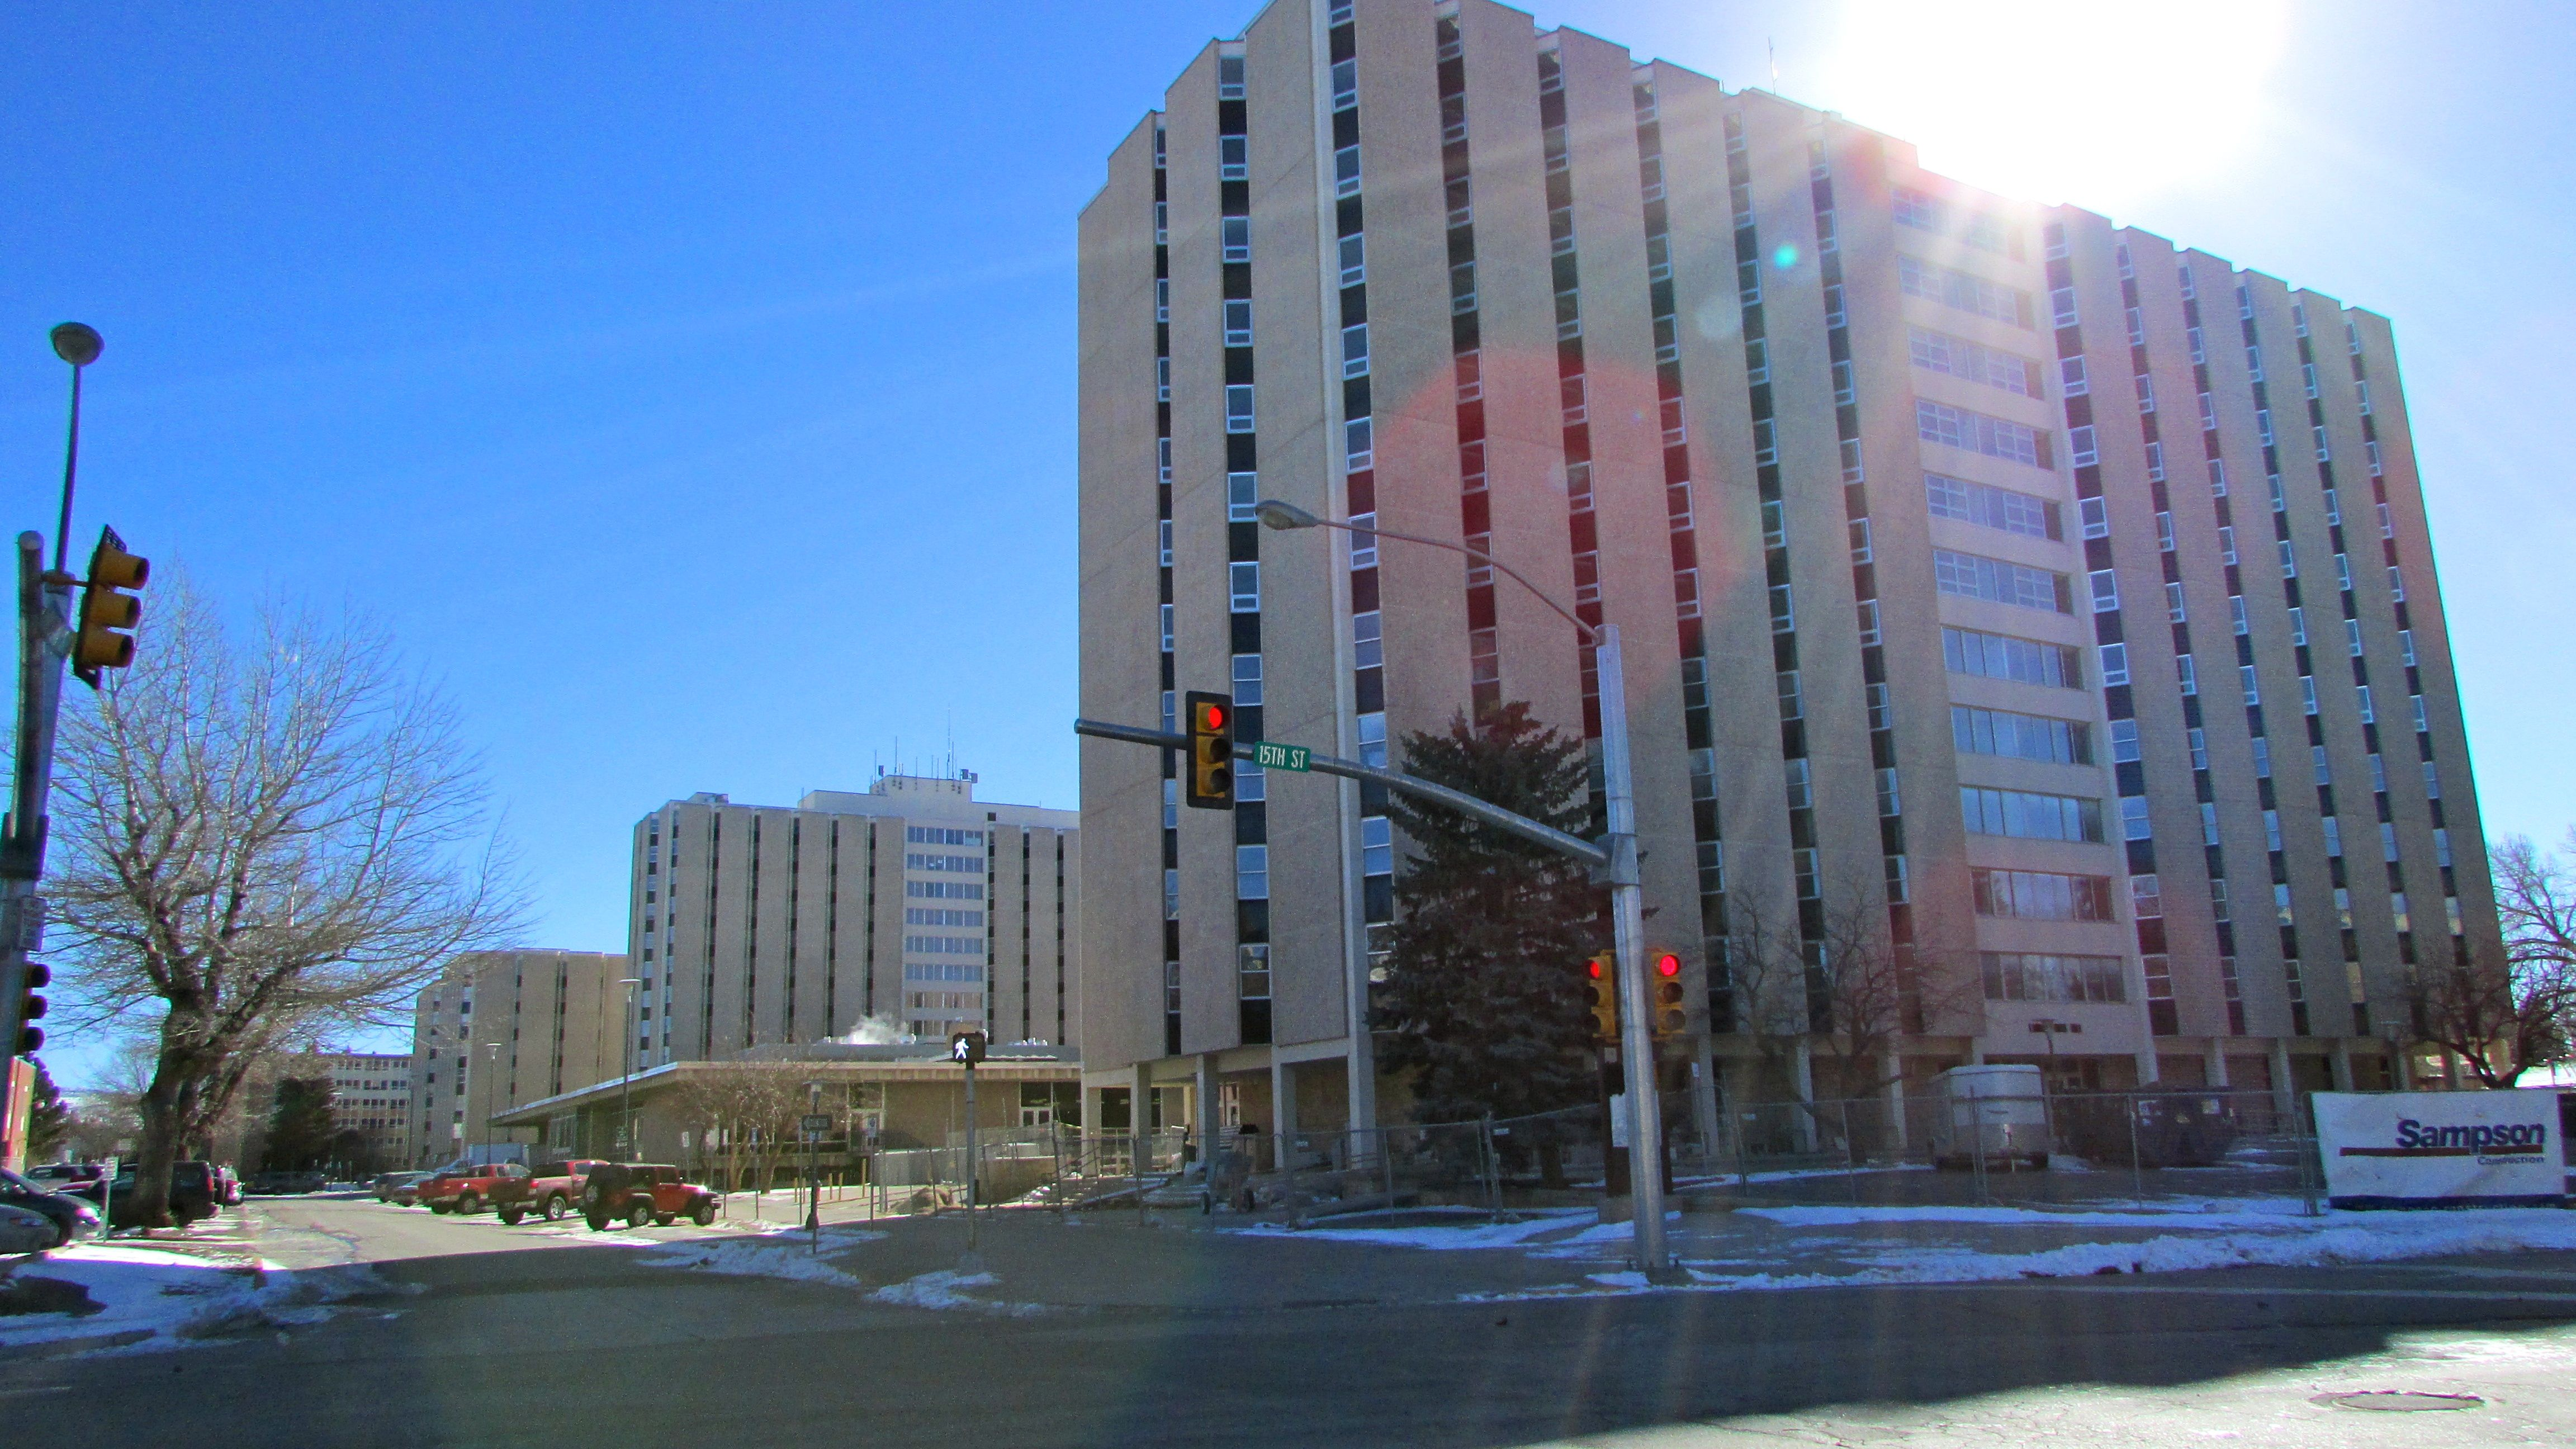 Wyoming Hall and Mens Residence Hall, University of